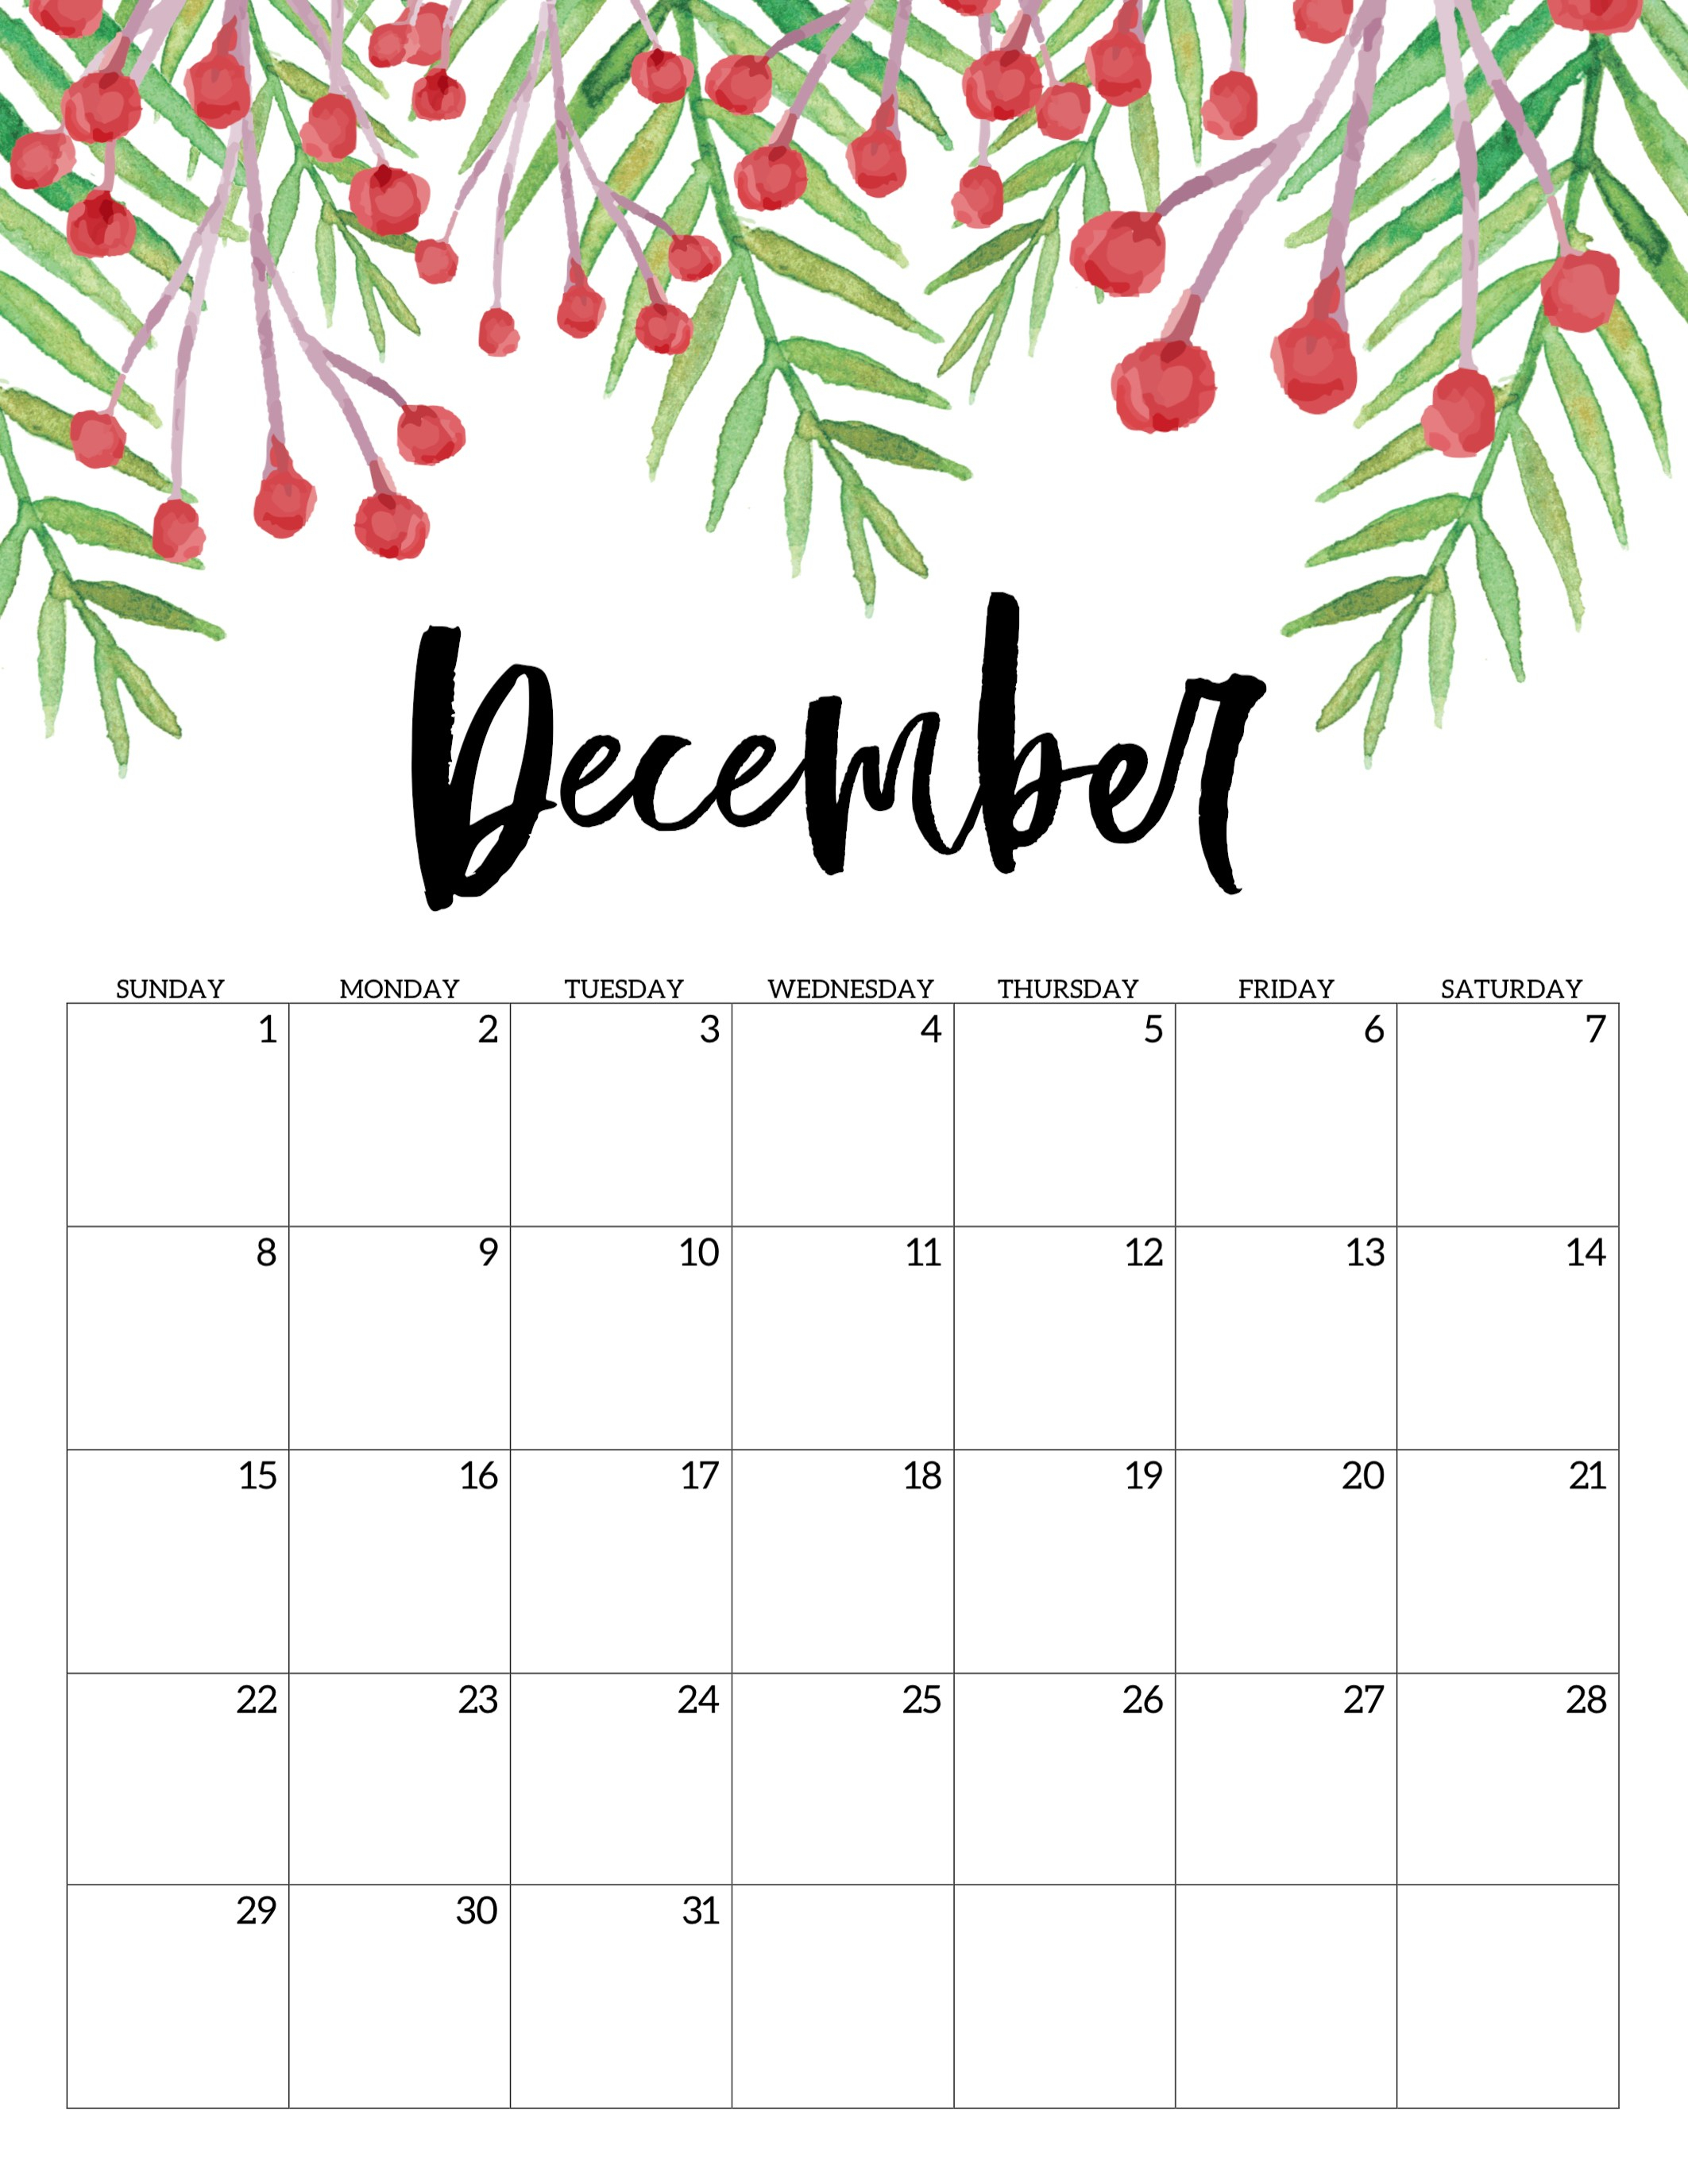 Free Printable Calendar 2019 - Floral - Paper Trail Design with regard to Blank Calendar Months For Year 2019-2020 Girly